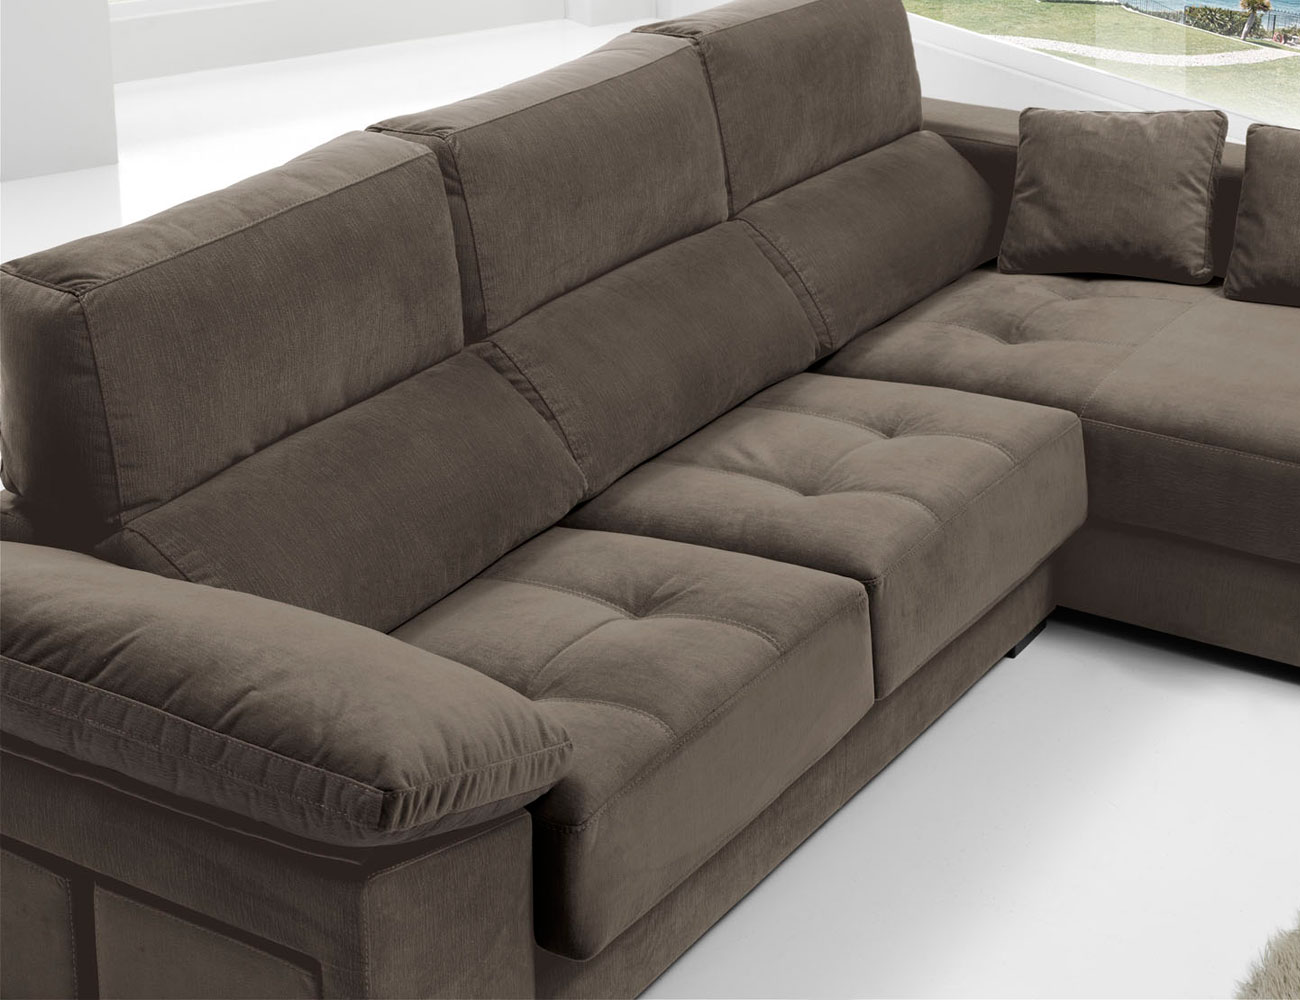 Sofa chaiselongue anti manchas bering pouf 256